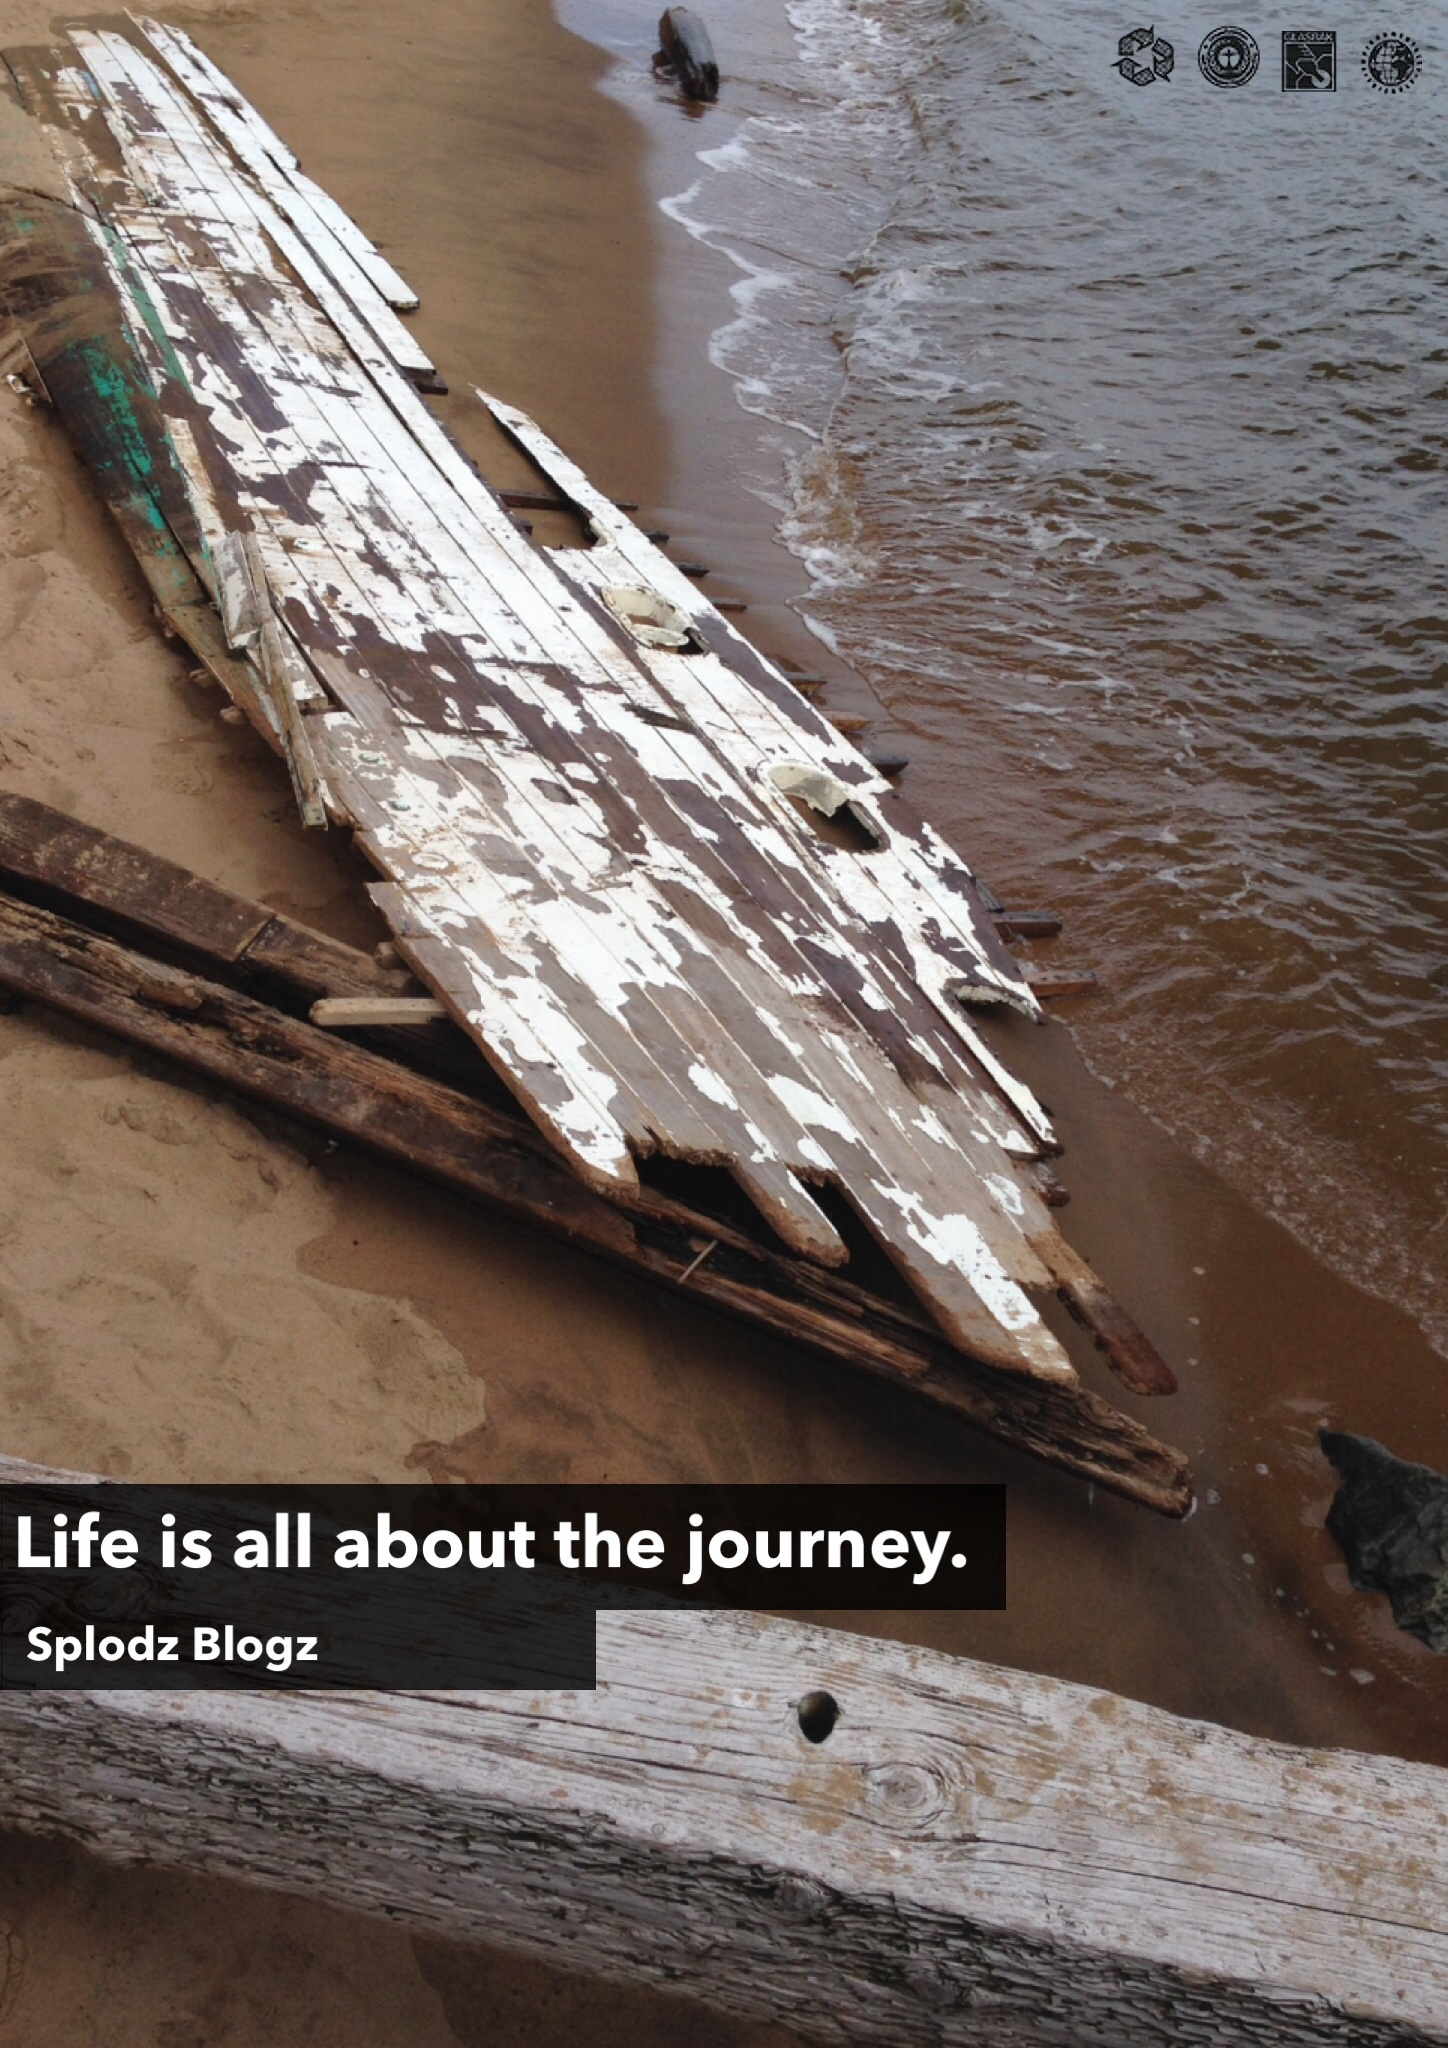 Life is all about the Journey